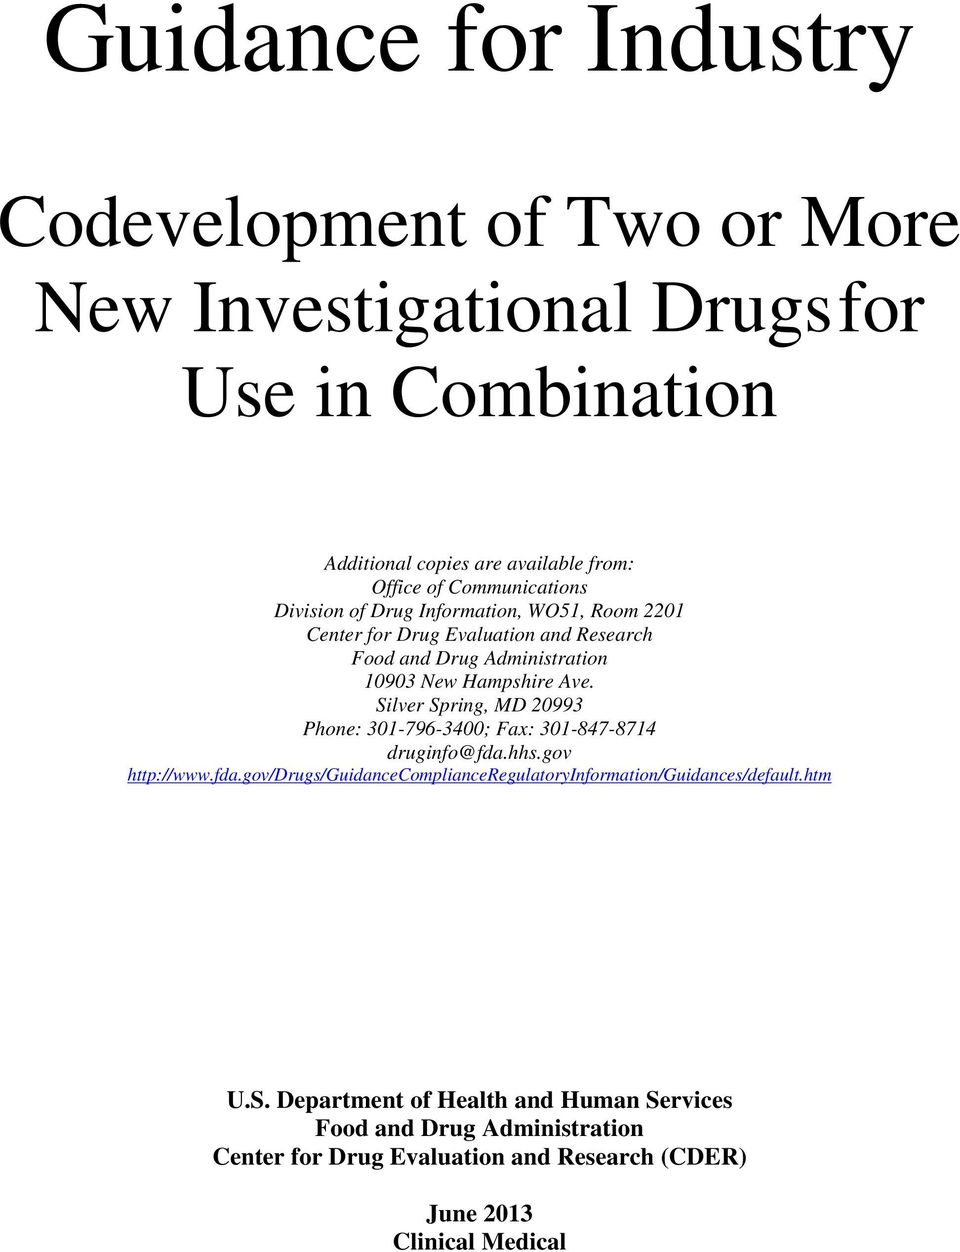 Silver Spring, MD 20993 Phone: 301-796-3400; Fax: 301-847-8714 druginfo@fda.hhs.gov http://www.fda.gov/drugs/guidancecomplianceregulatoryinformation/guidances/default.